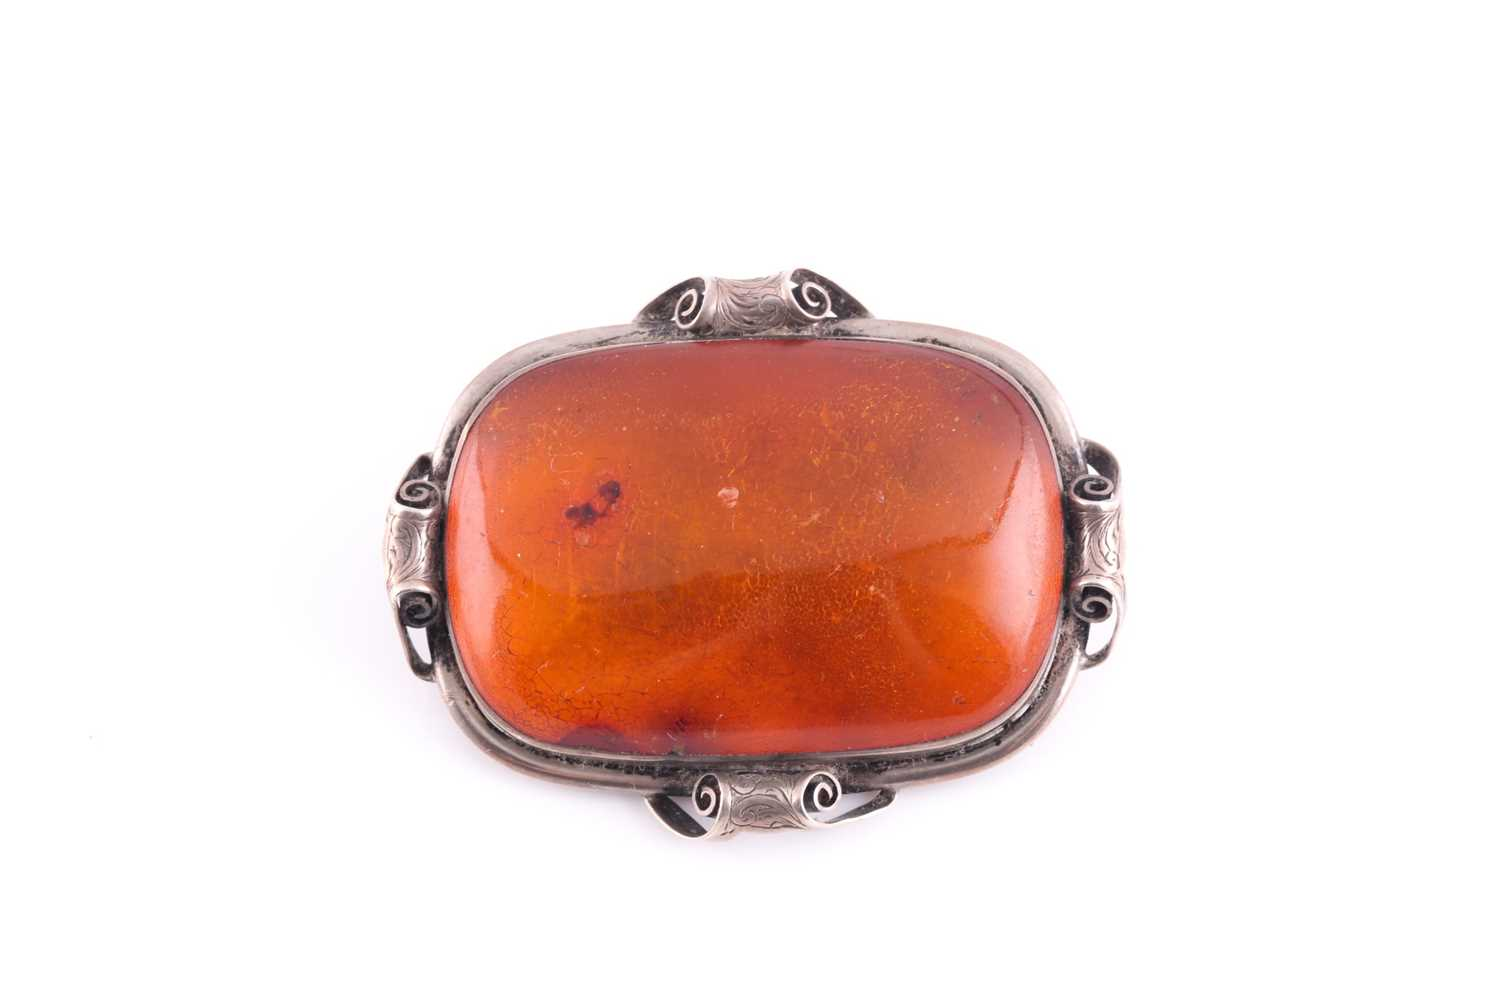 An Art Nouveau silver and amber brooch, the large rectangular single stone amber plaque withing an